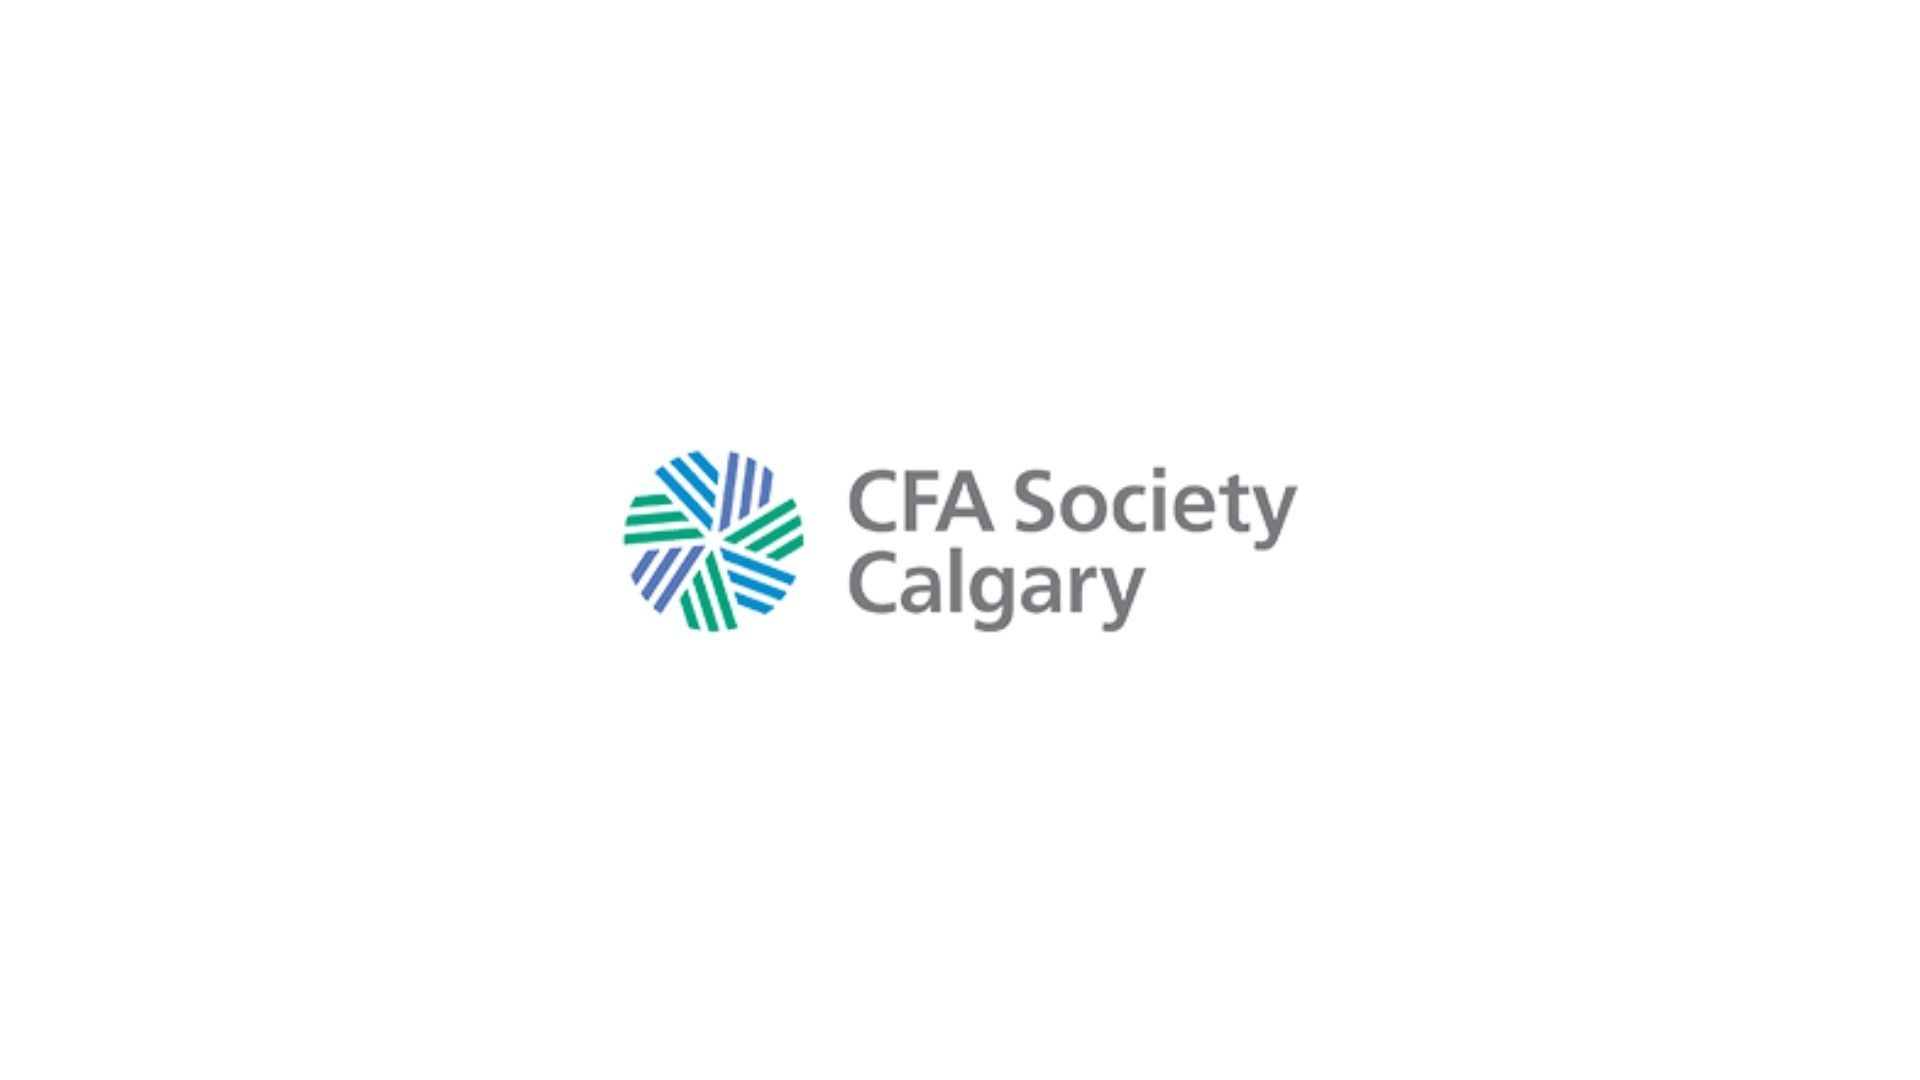 CFA Society Calgary: The Short Squeeze: How Retail Investors Used GameStop To Take On Wall Street